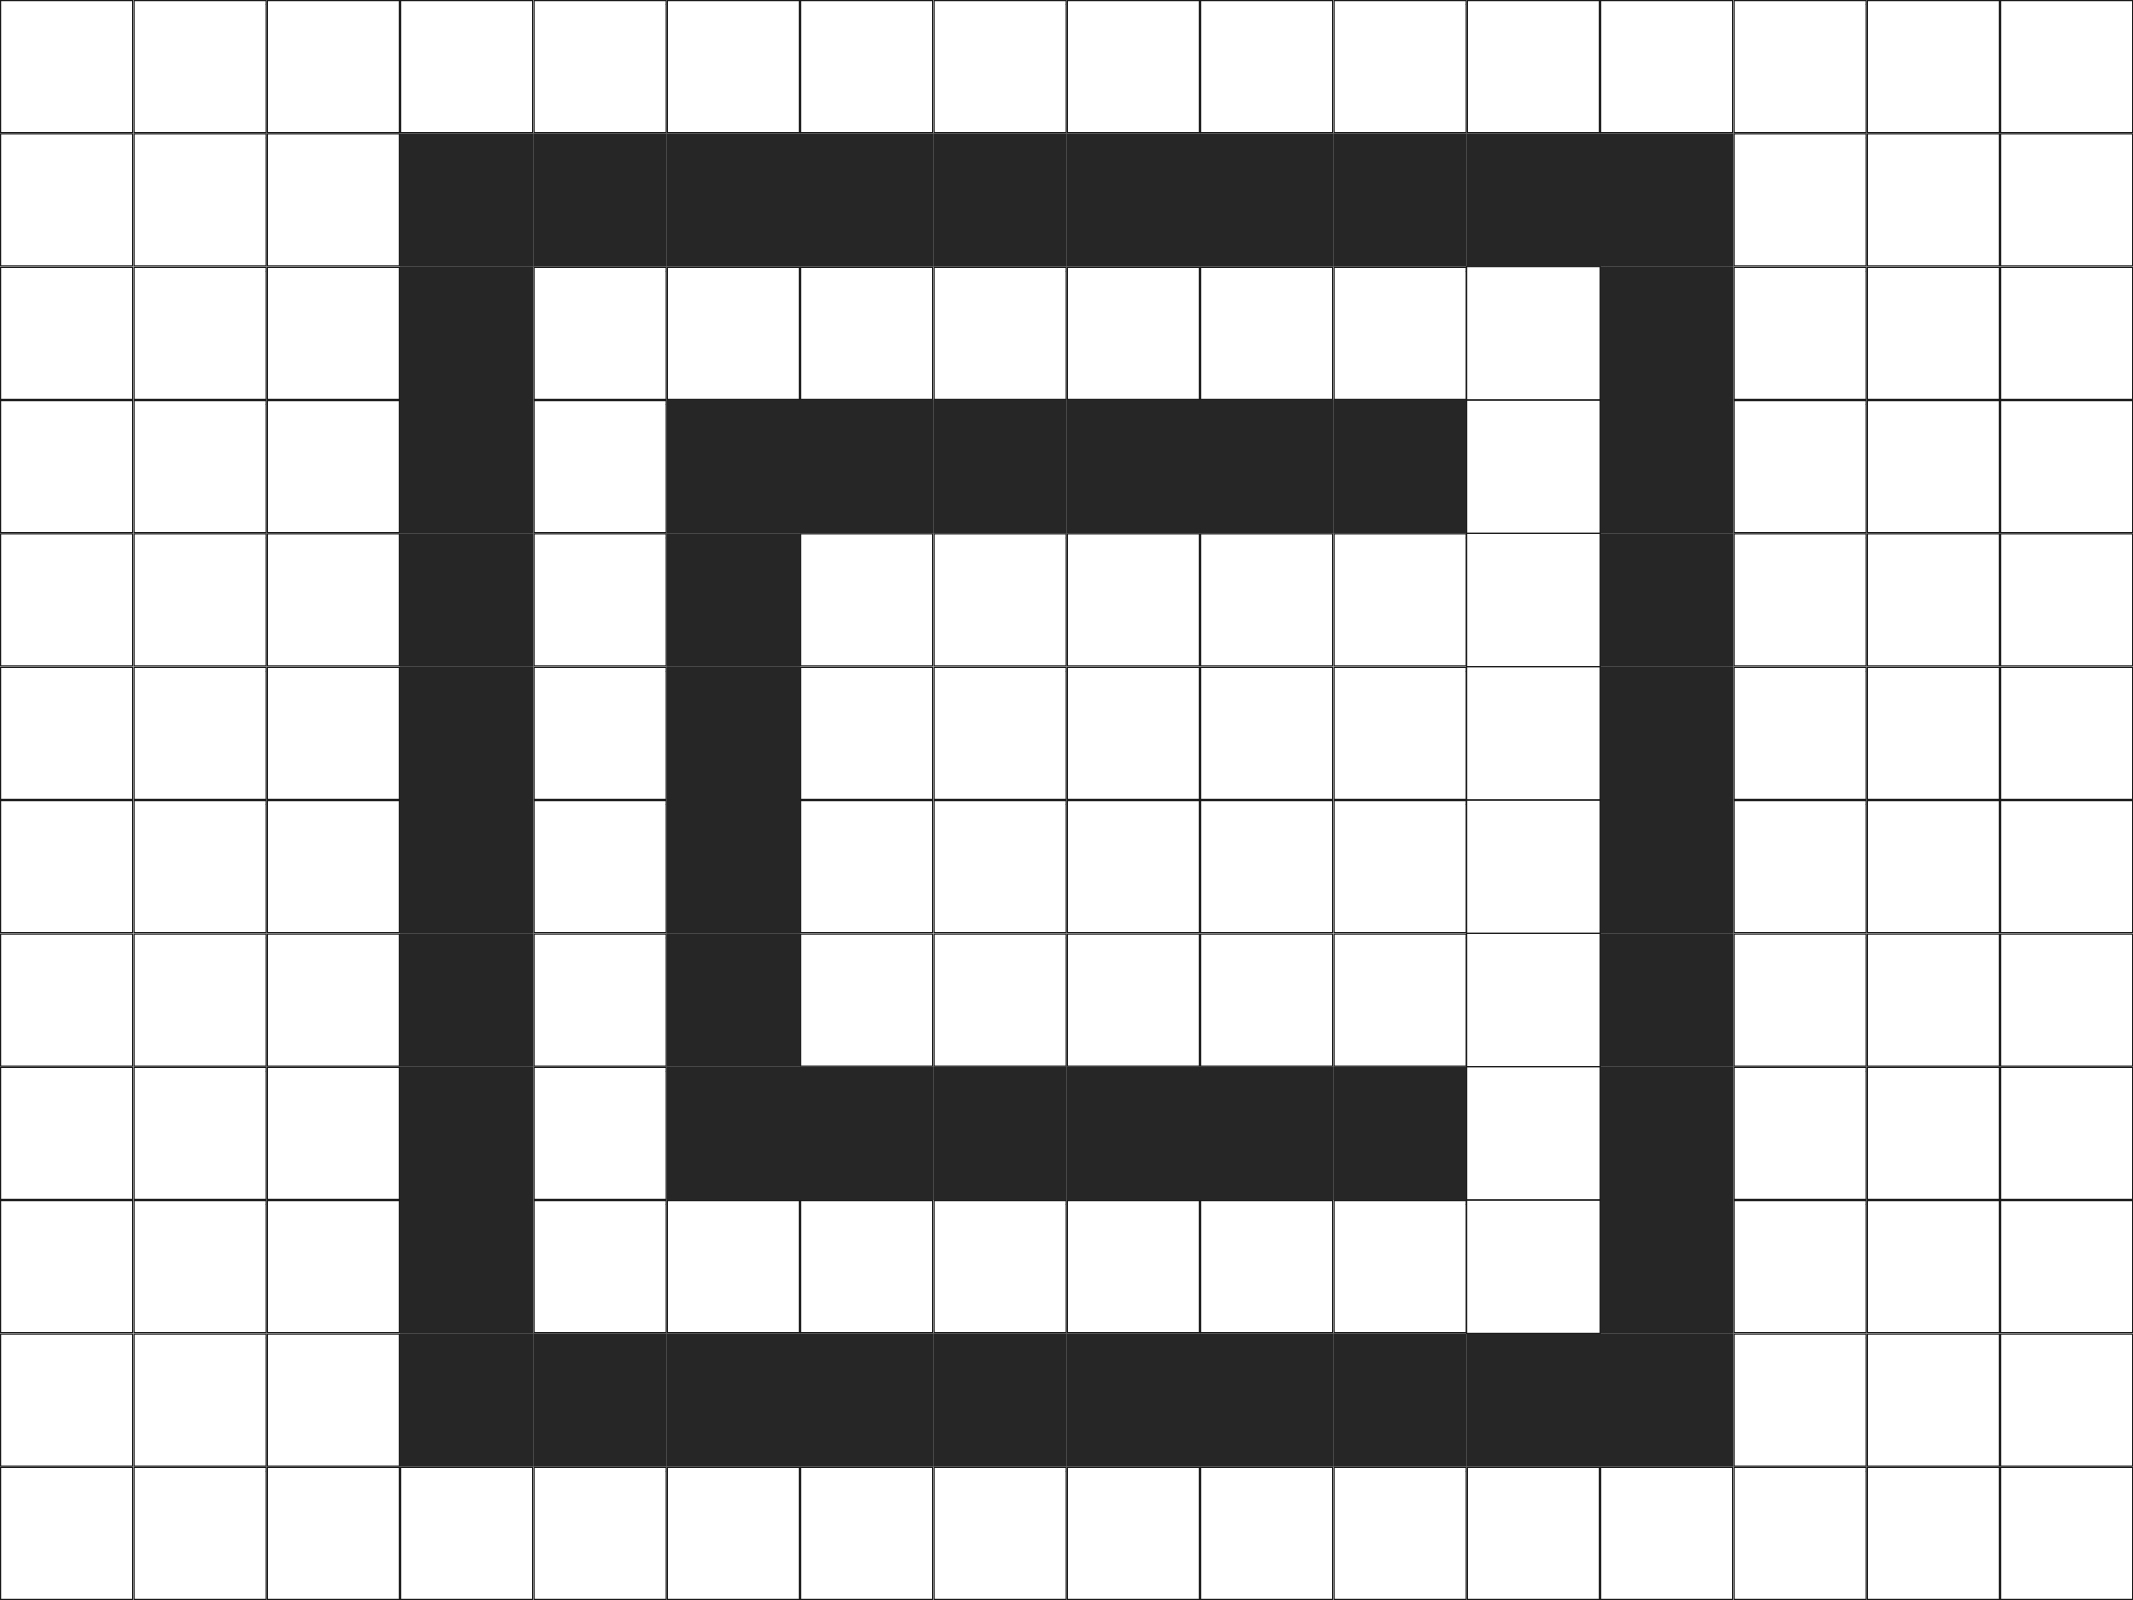 image relating to Usa Today Crossword Puzzle Printable known as Timothy Parker, Accused Of Plagiarism, Is Out As United states of america Todays